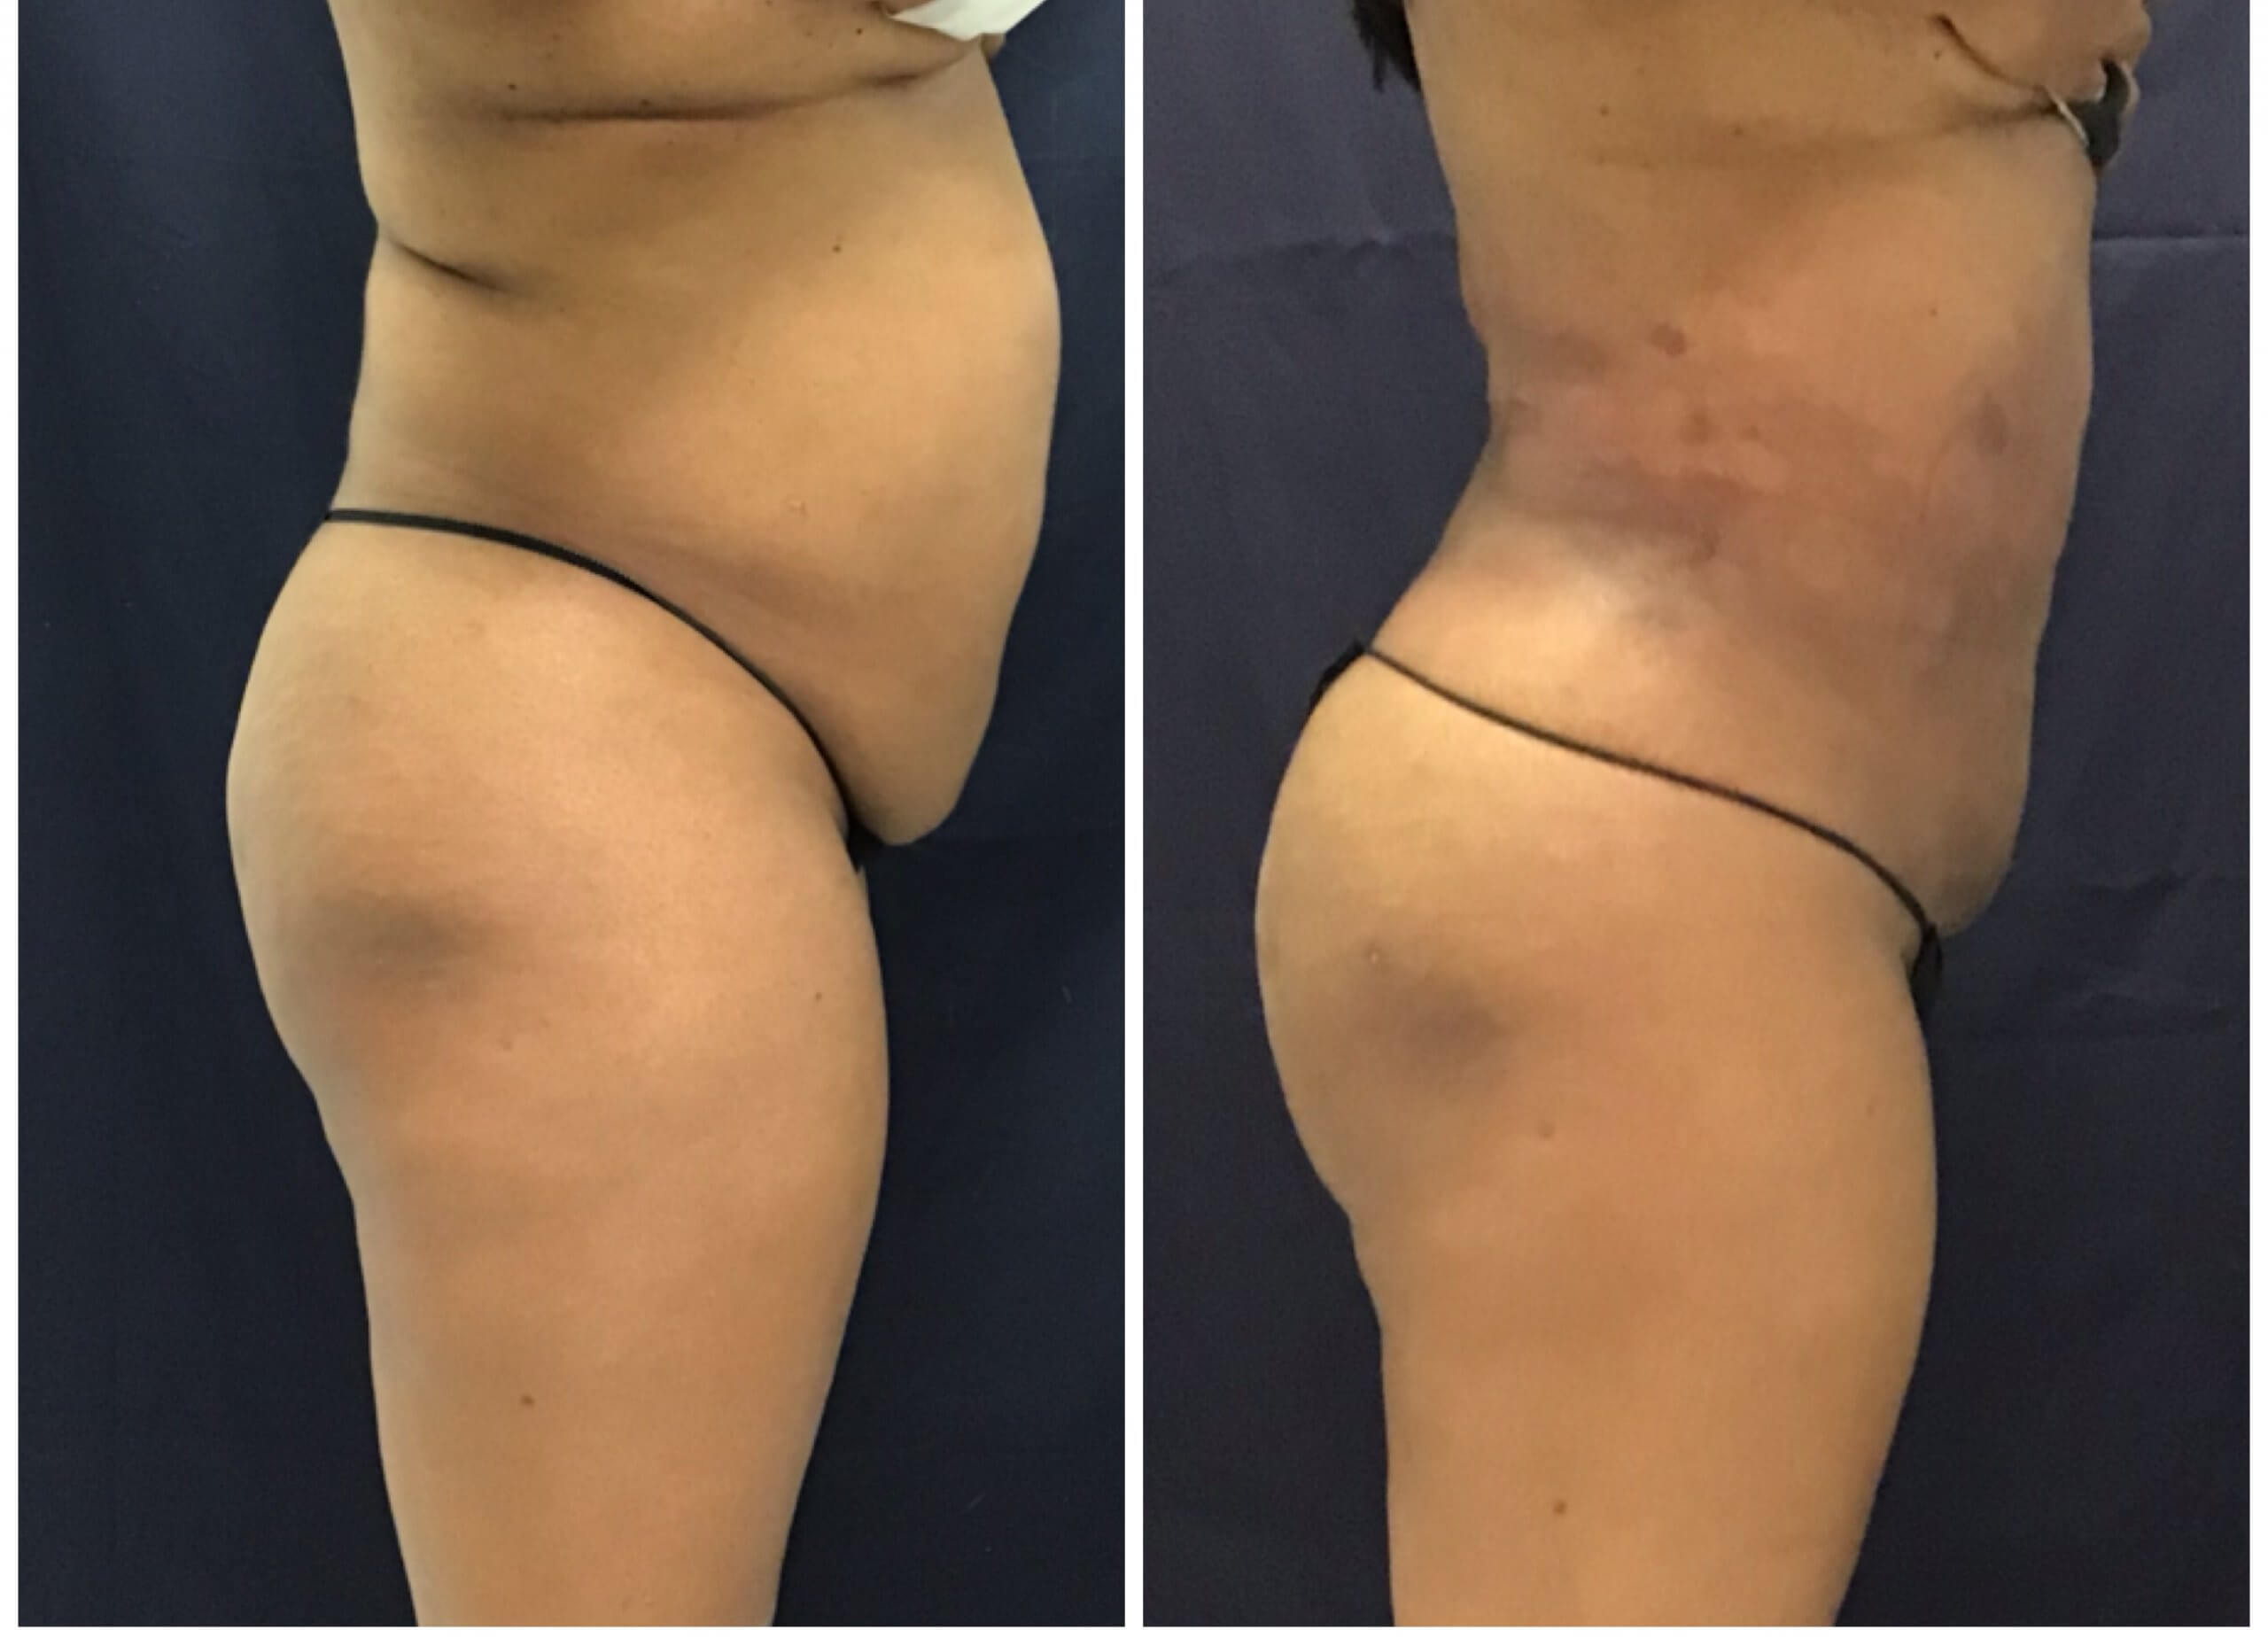 Before and after Brazilian Butt Lift - Liposuction with Thermitight for skin Tightening before and after 6 weeks